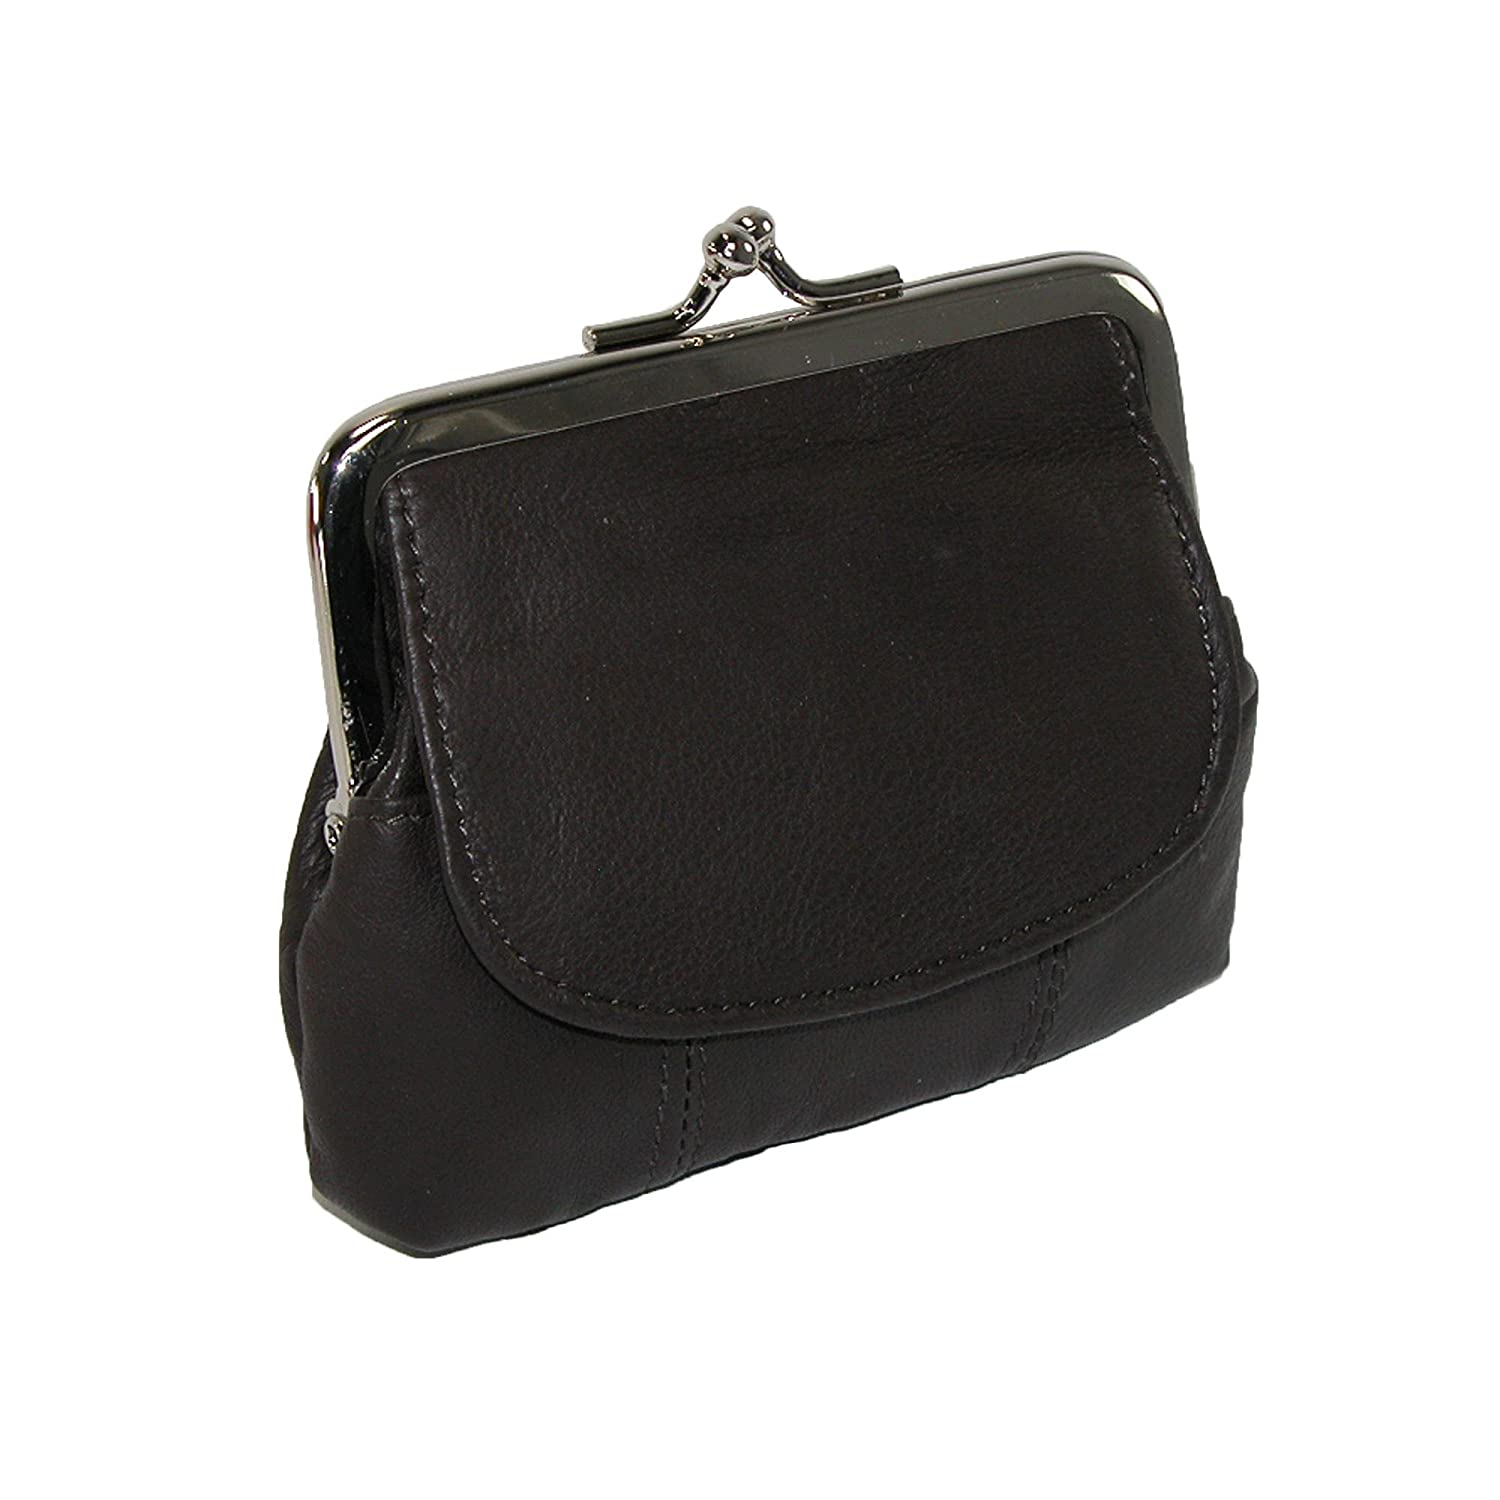 CTM® Leather Double Compartment Coin Purse Black RL-92806-BLK